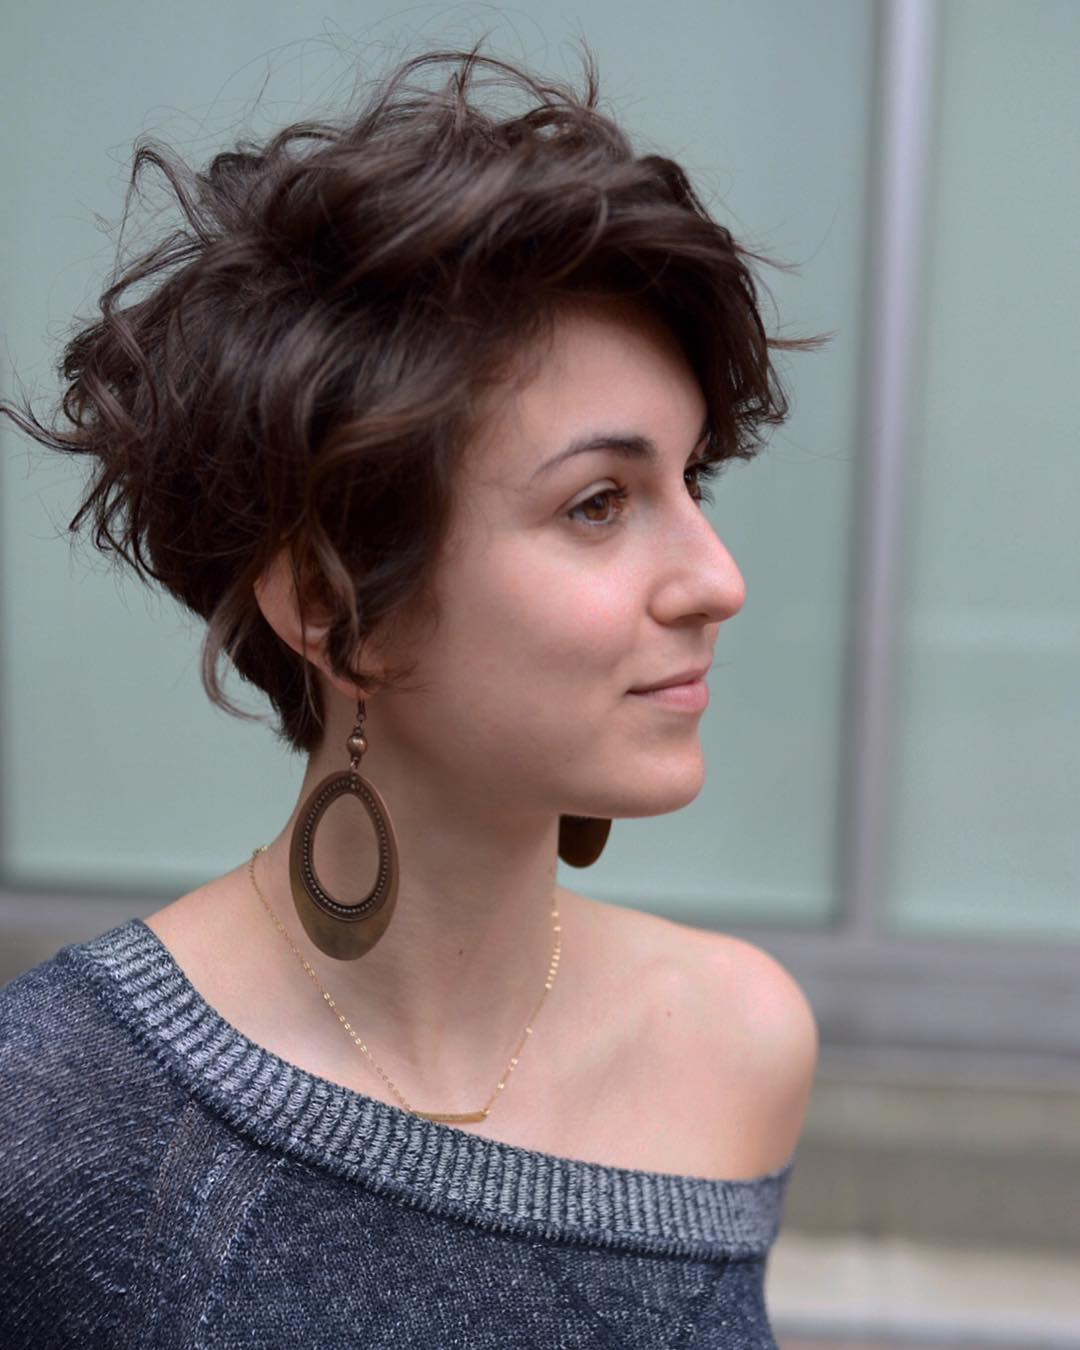 Chic Brunette Scissor Cut Pixie with Long Side Swept Bangs and Messy Wavy Texture Short Modern Feminine Hairstyle